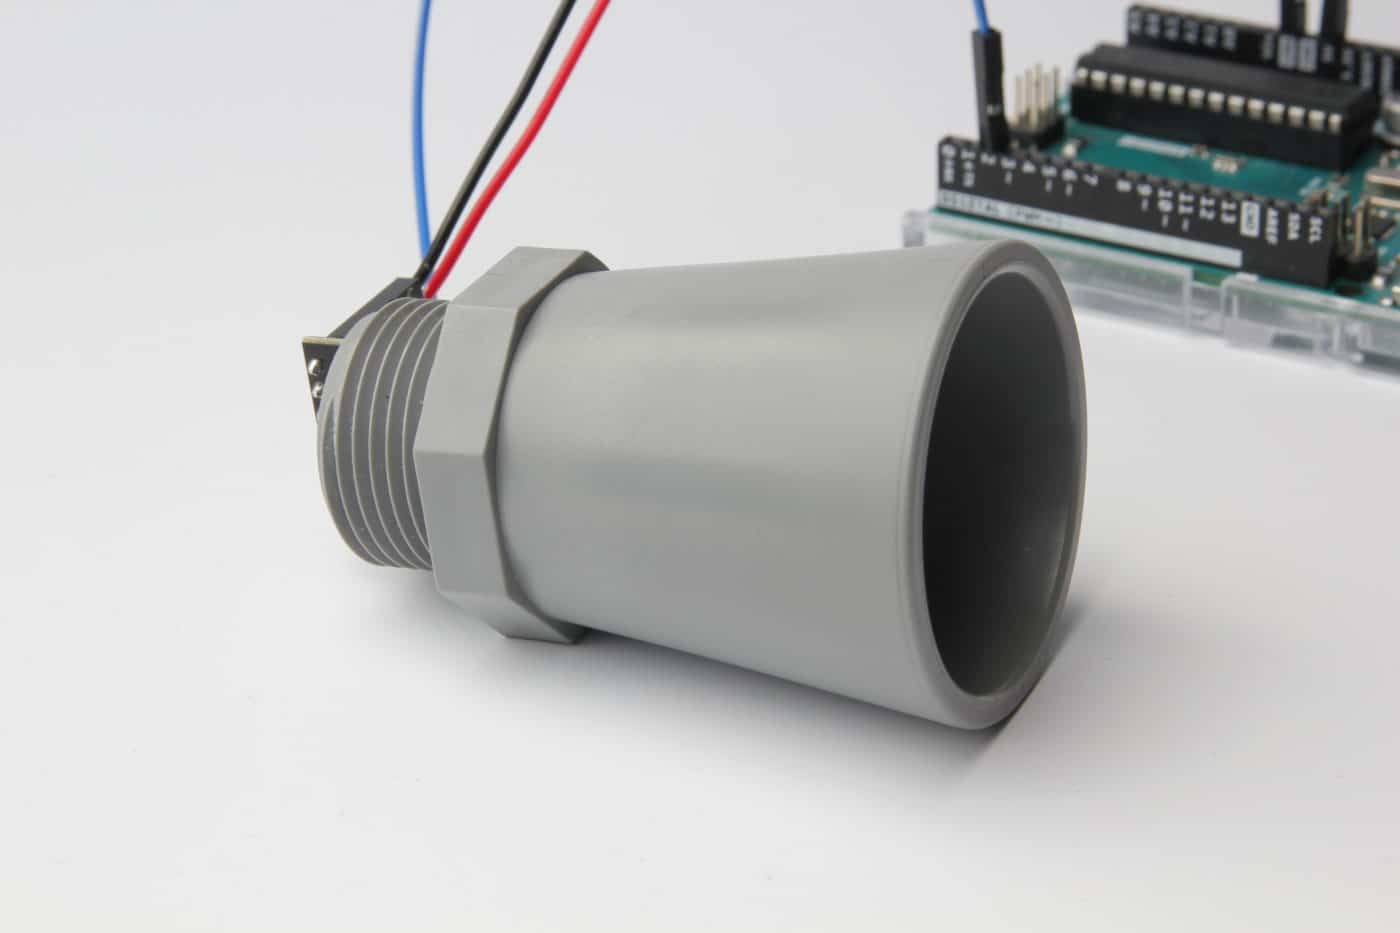 MaxBotix MB7389 Ultrasonic Distance sensor tutorial waterproof featured image